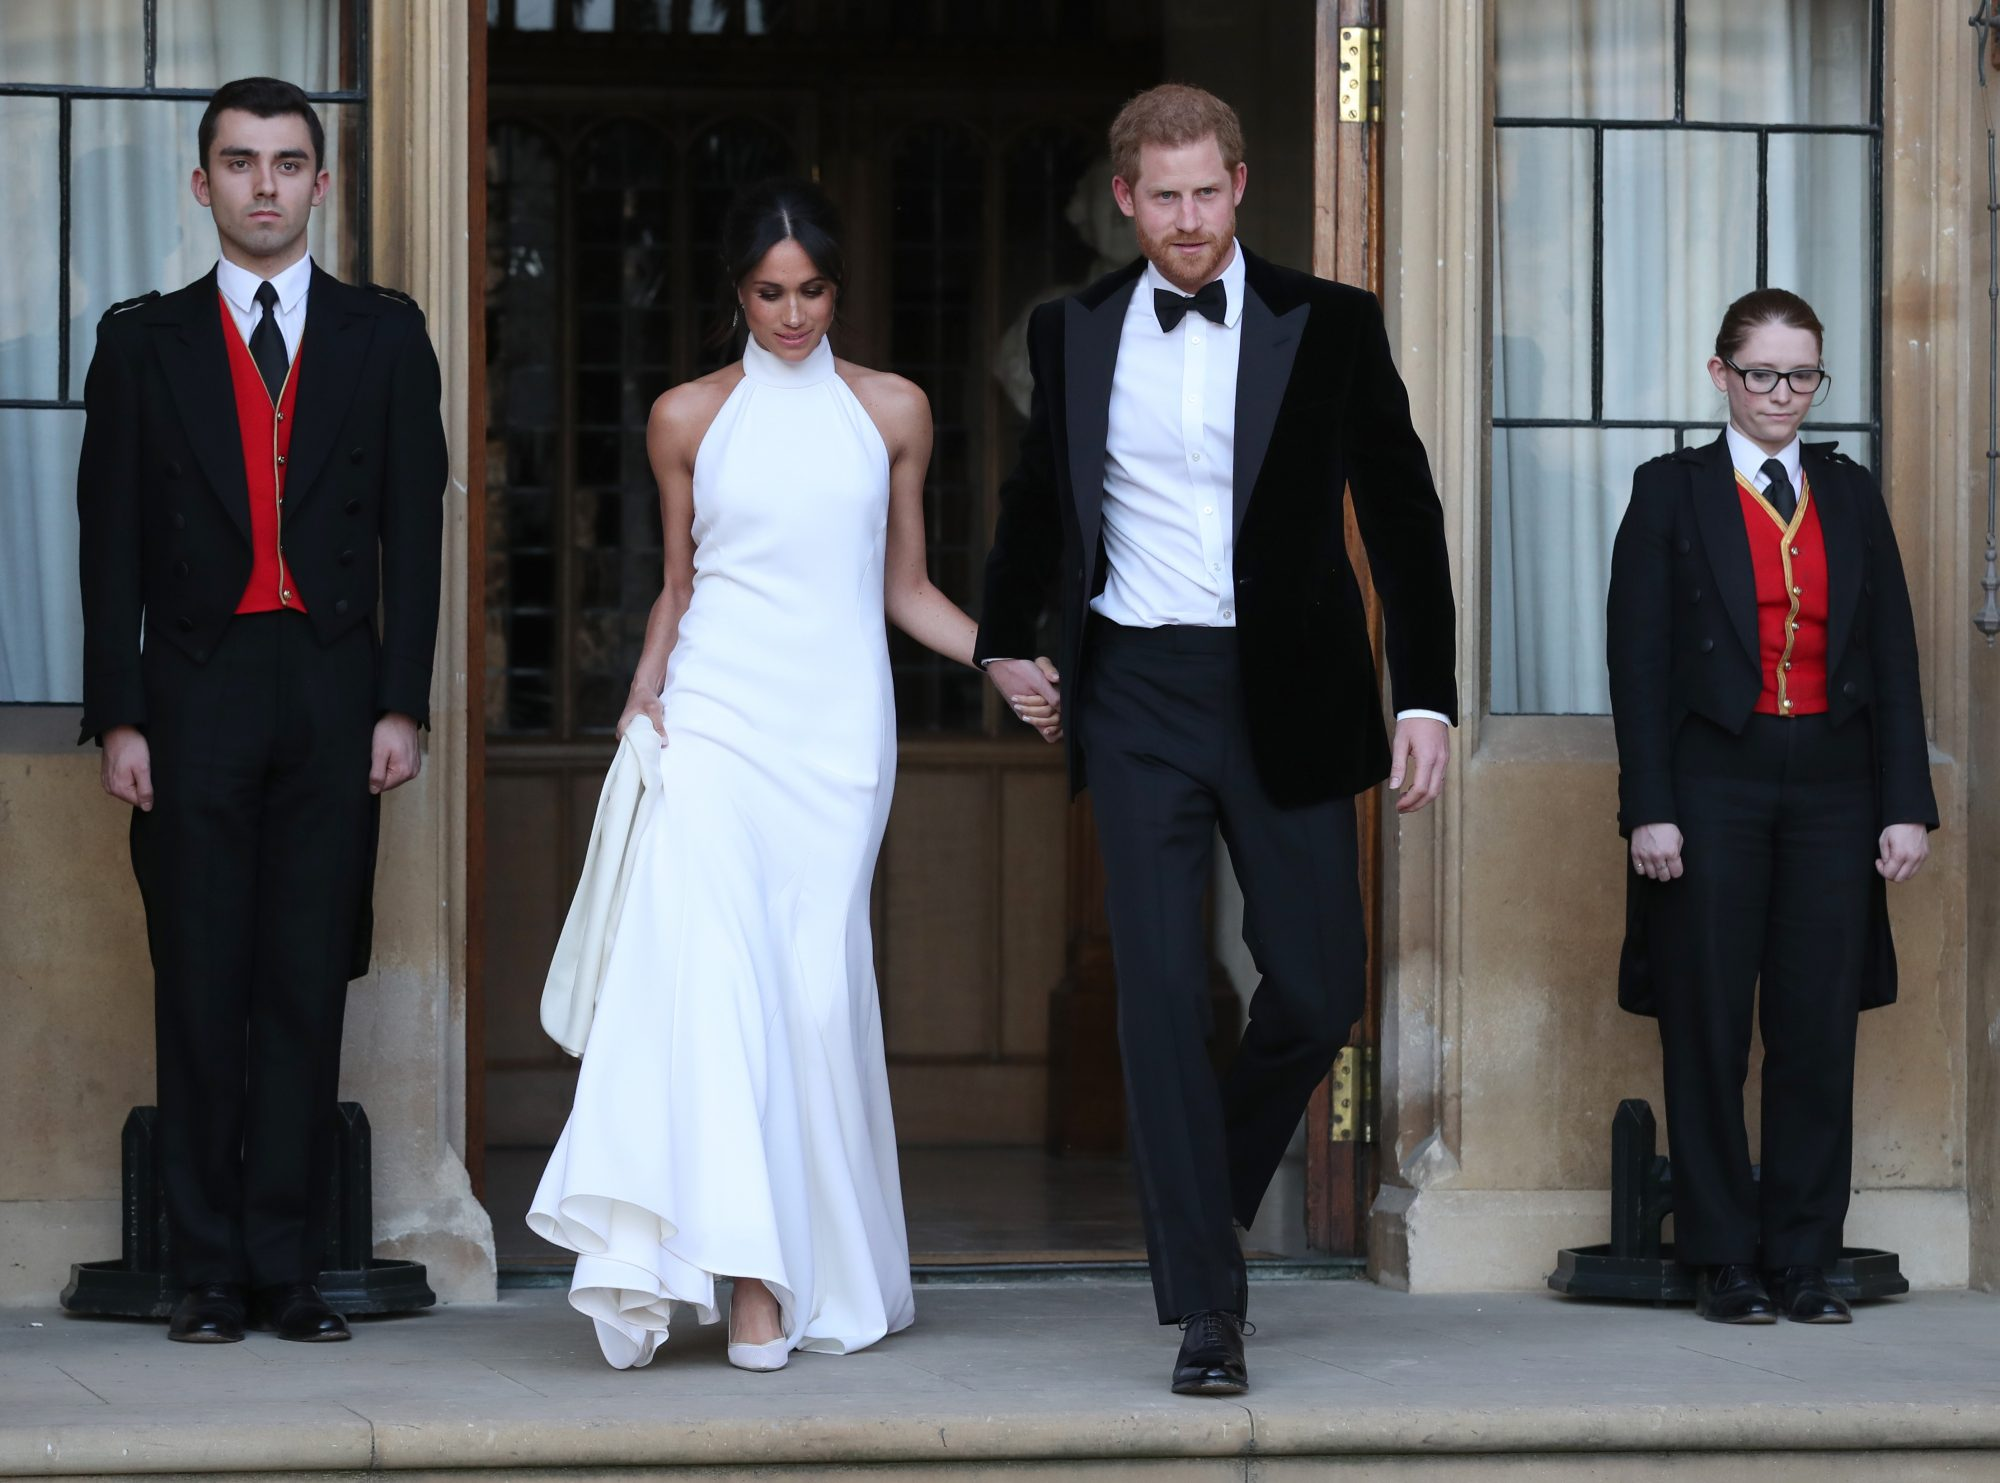 See Harry and Meghan's Whimsical Reception Program (Meghan May Have Done the Calligraphy Herself!)